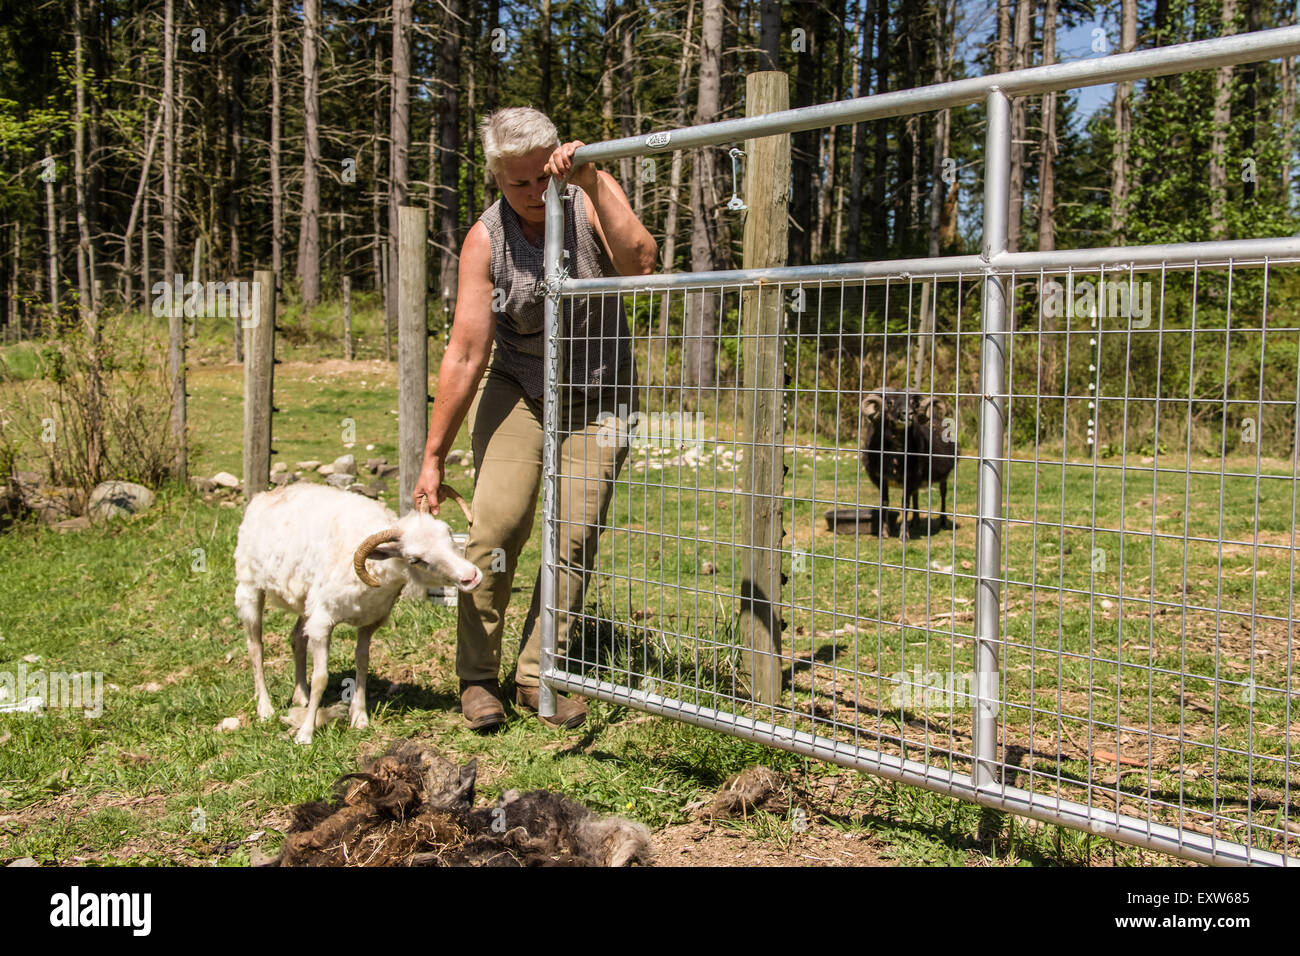 Woman trying to get an Icelandic heritage breed of sheep back into its pen after shearing it, in Carnation, Washington, - Stock Image